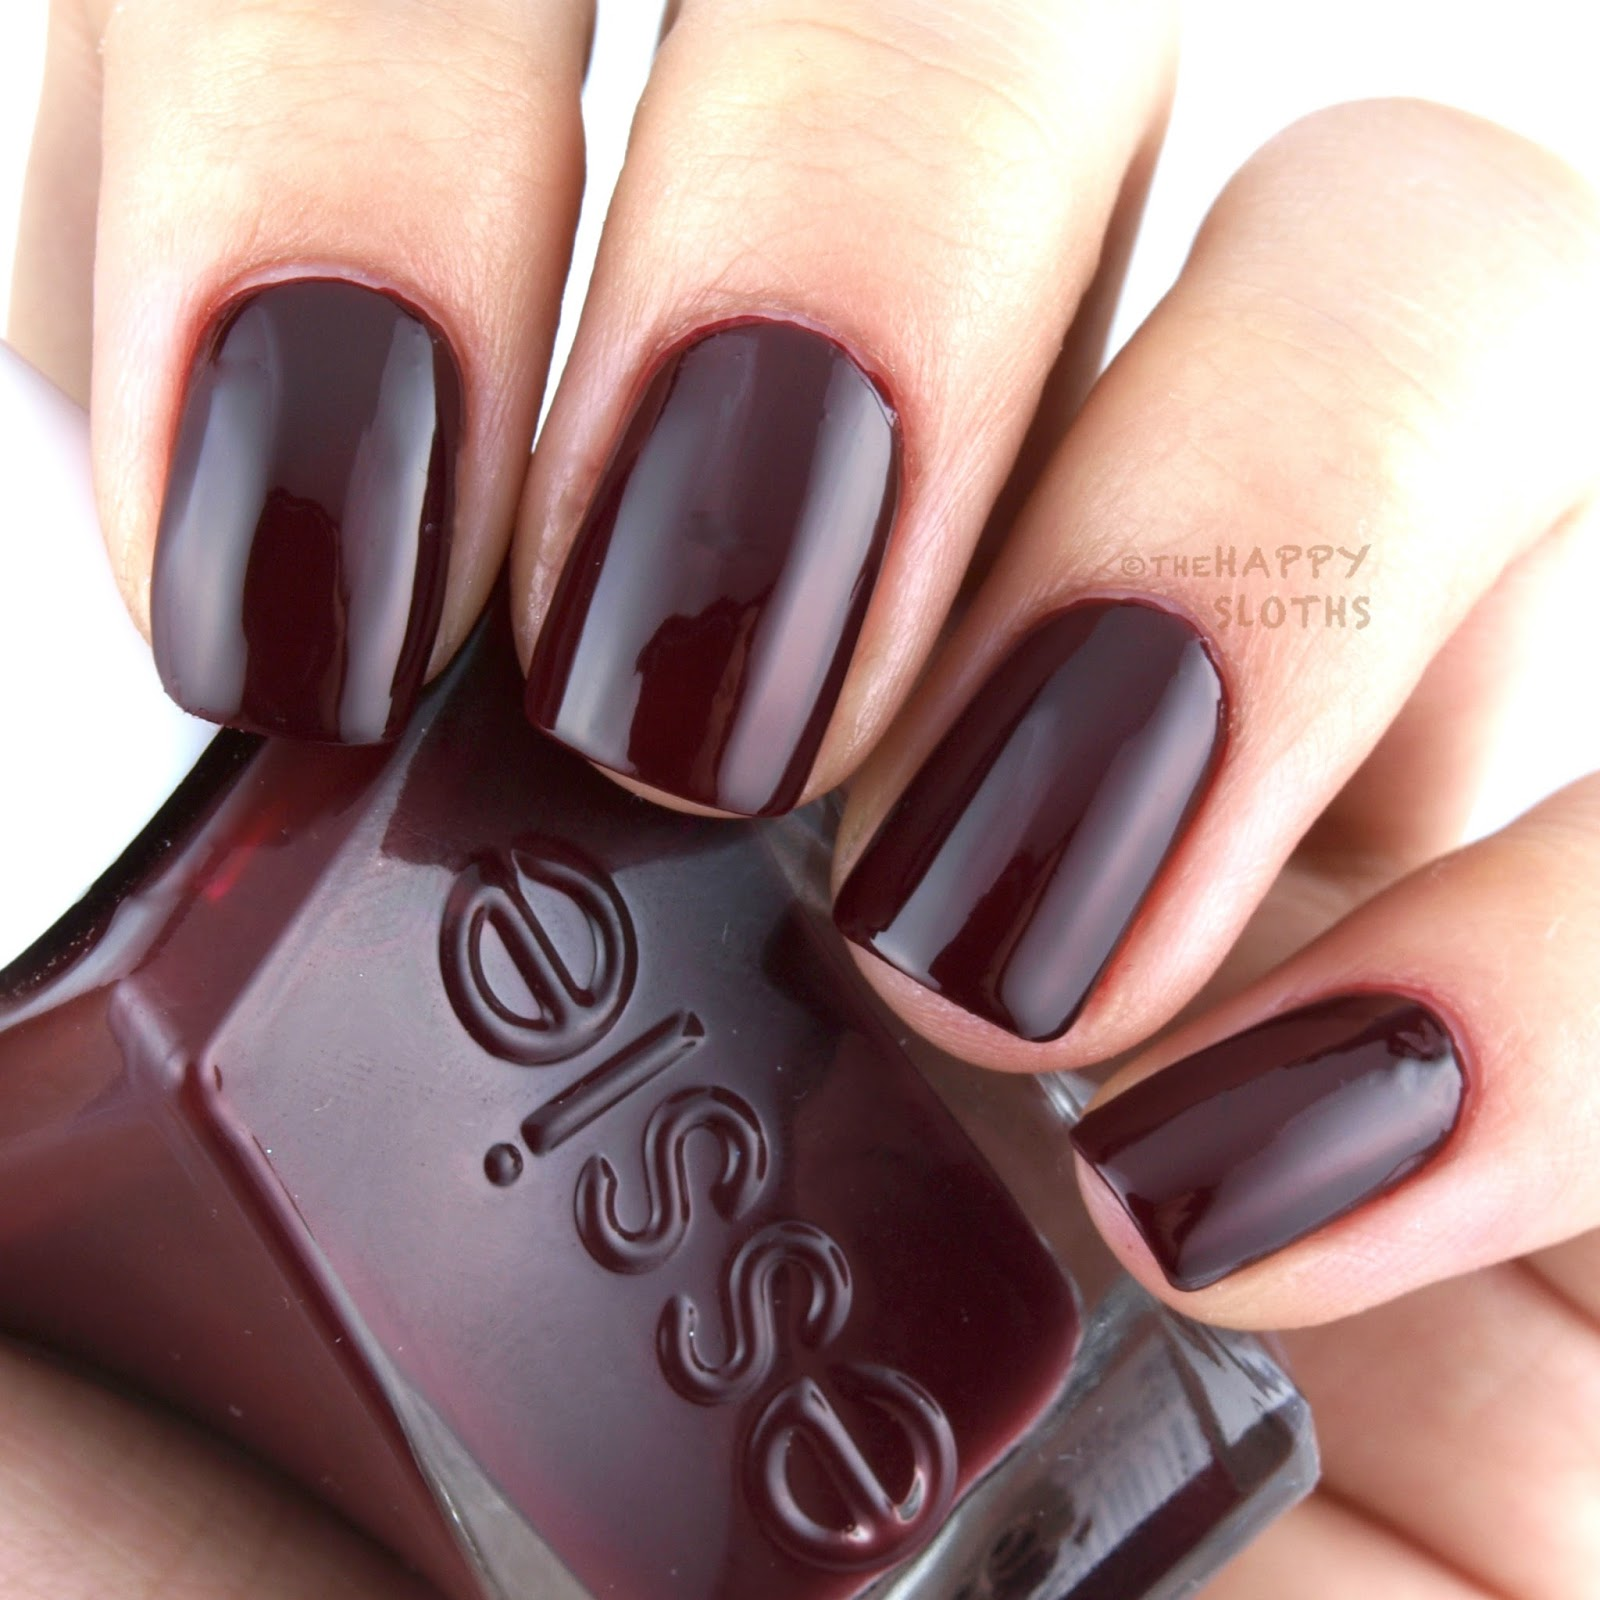 Essie Gel Couture Nail Polish: Review and Swatches | The Happy ...